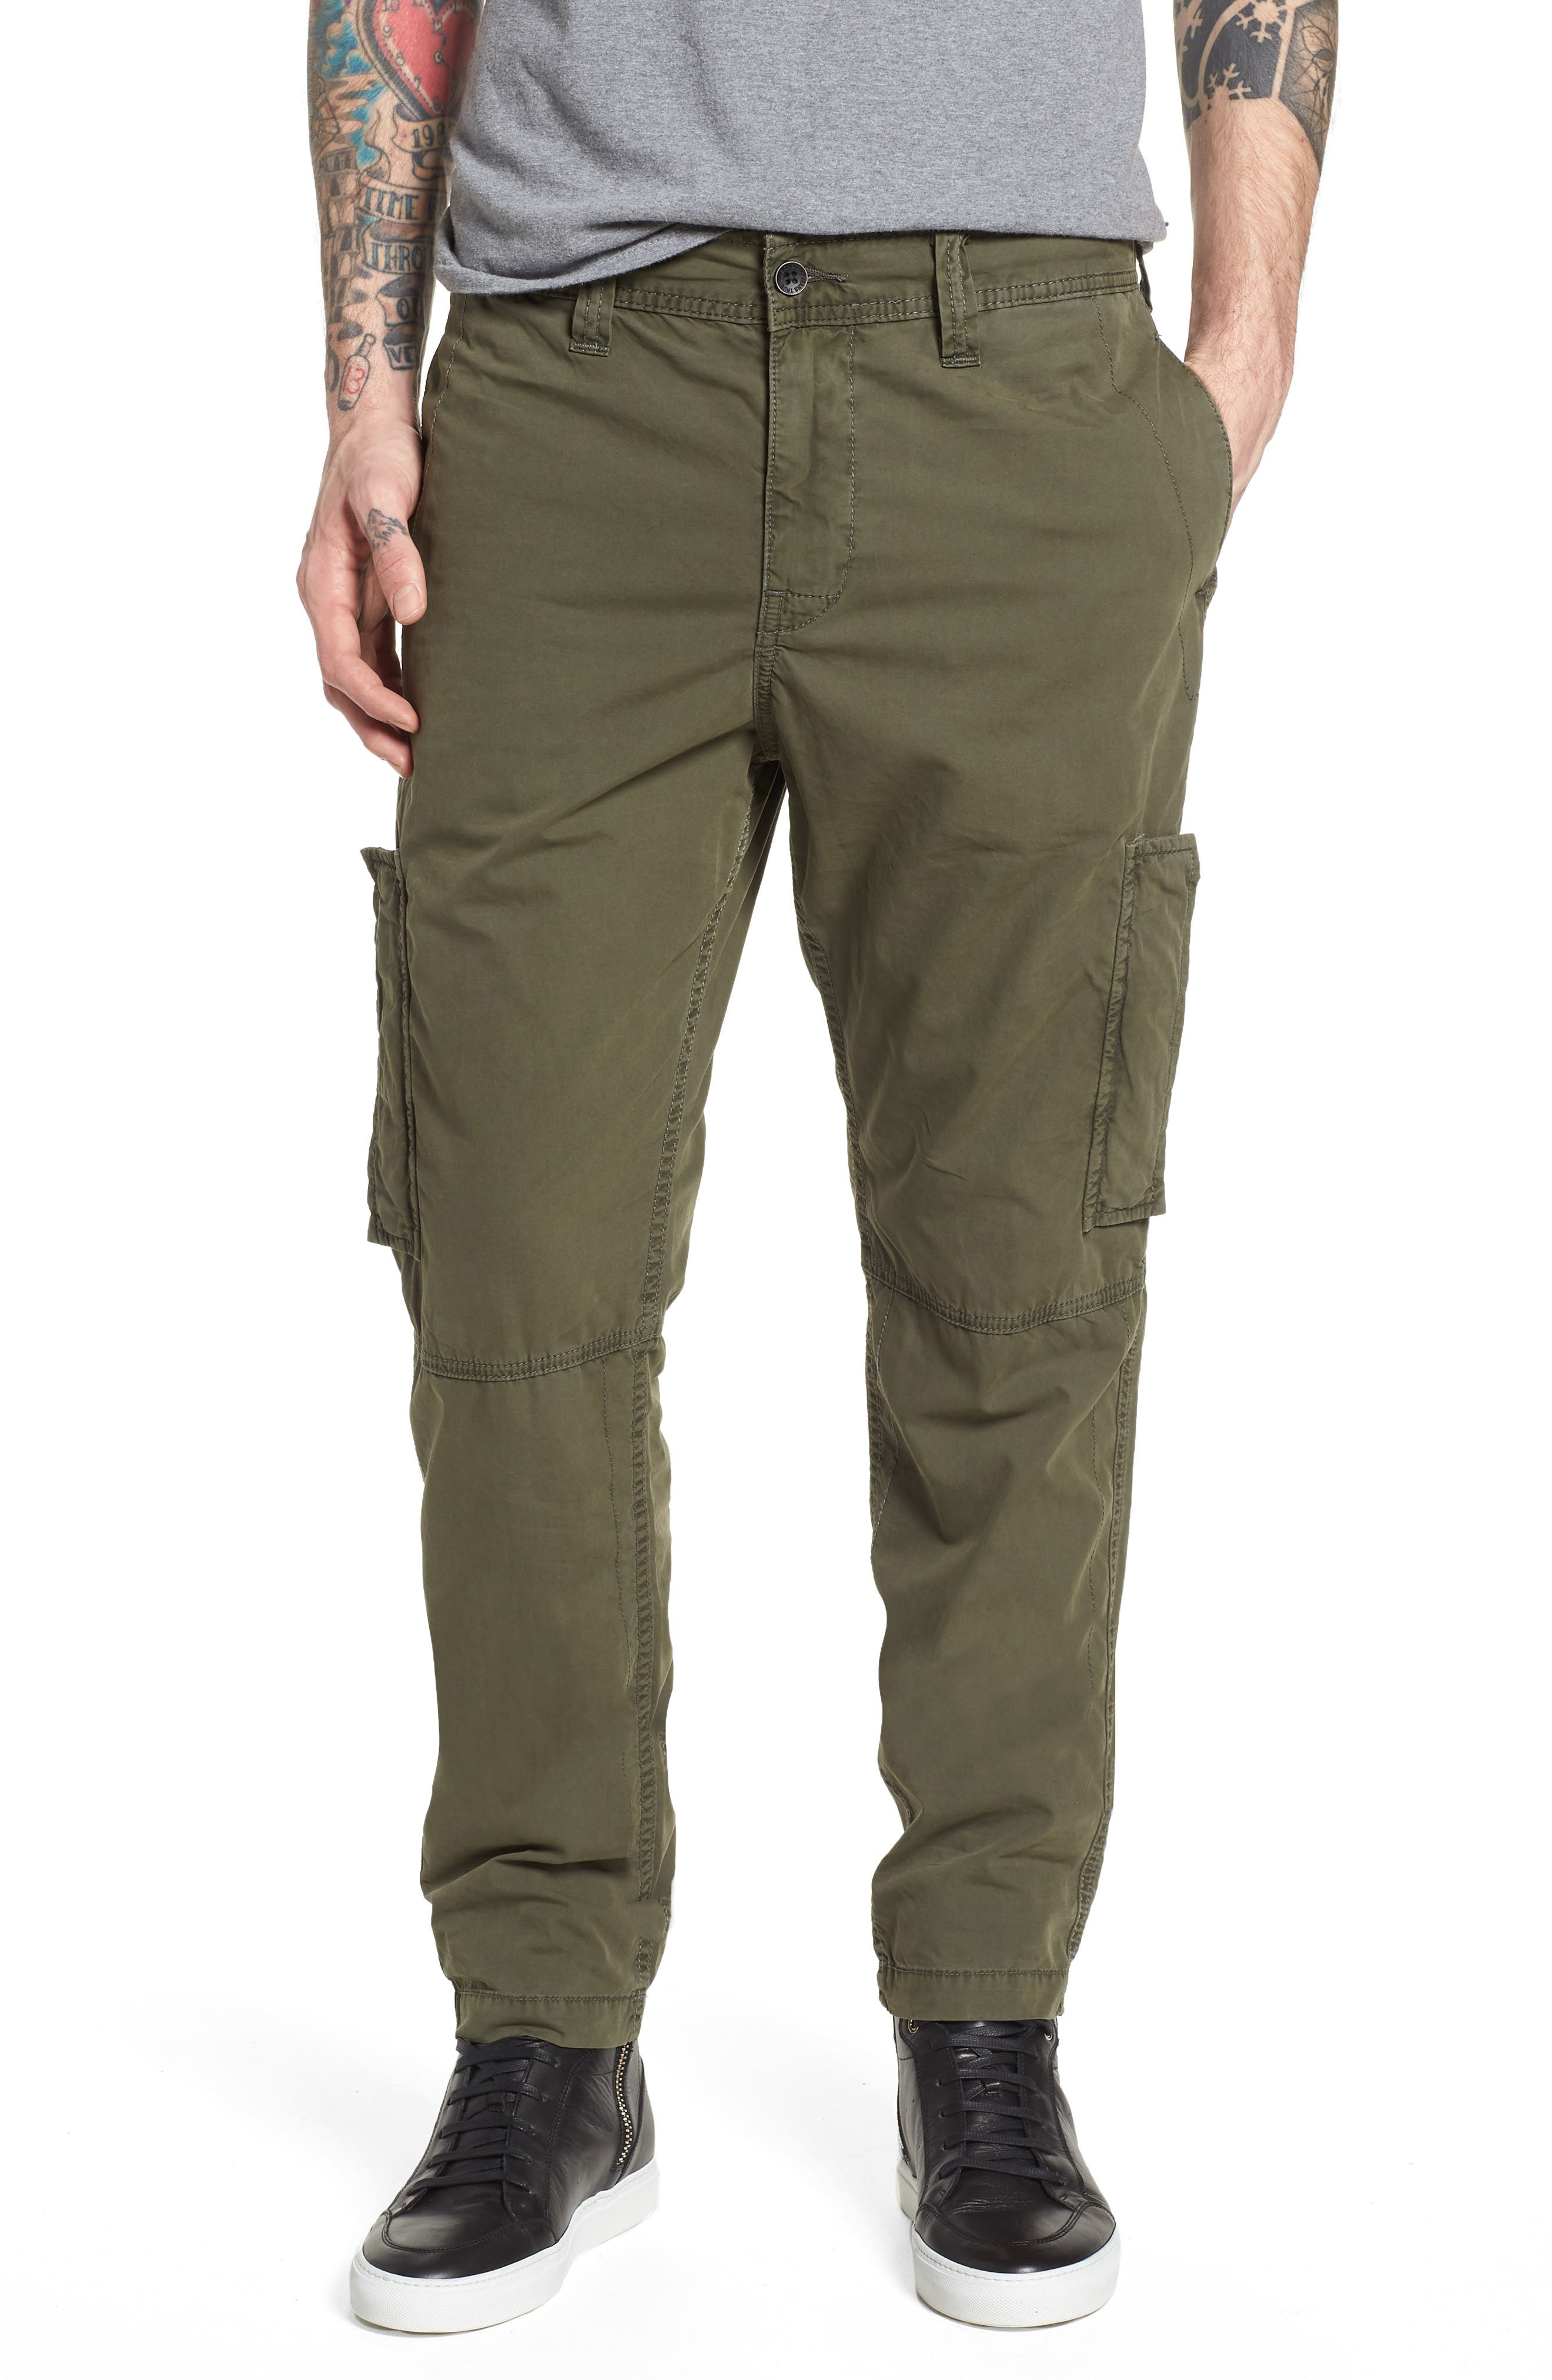 Officer Field Pants,                             Main thumbnail 1, color,                             EPJ MILITANT GREEN